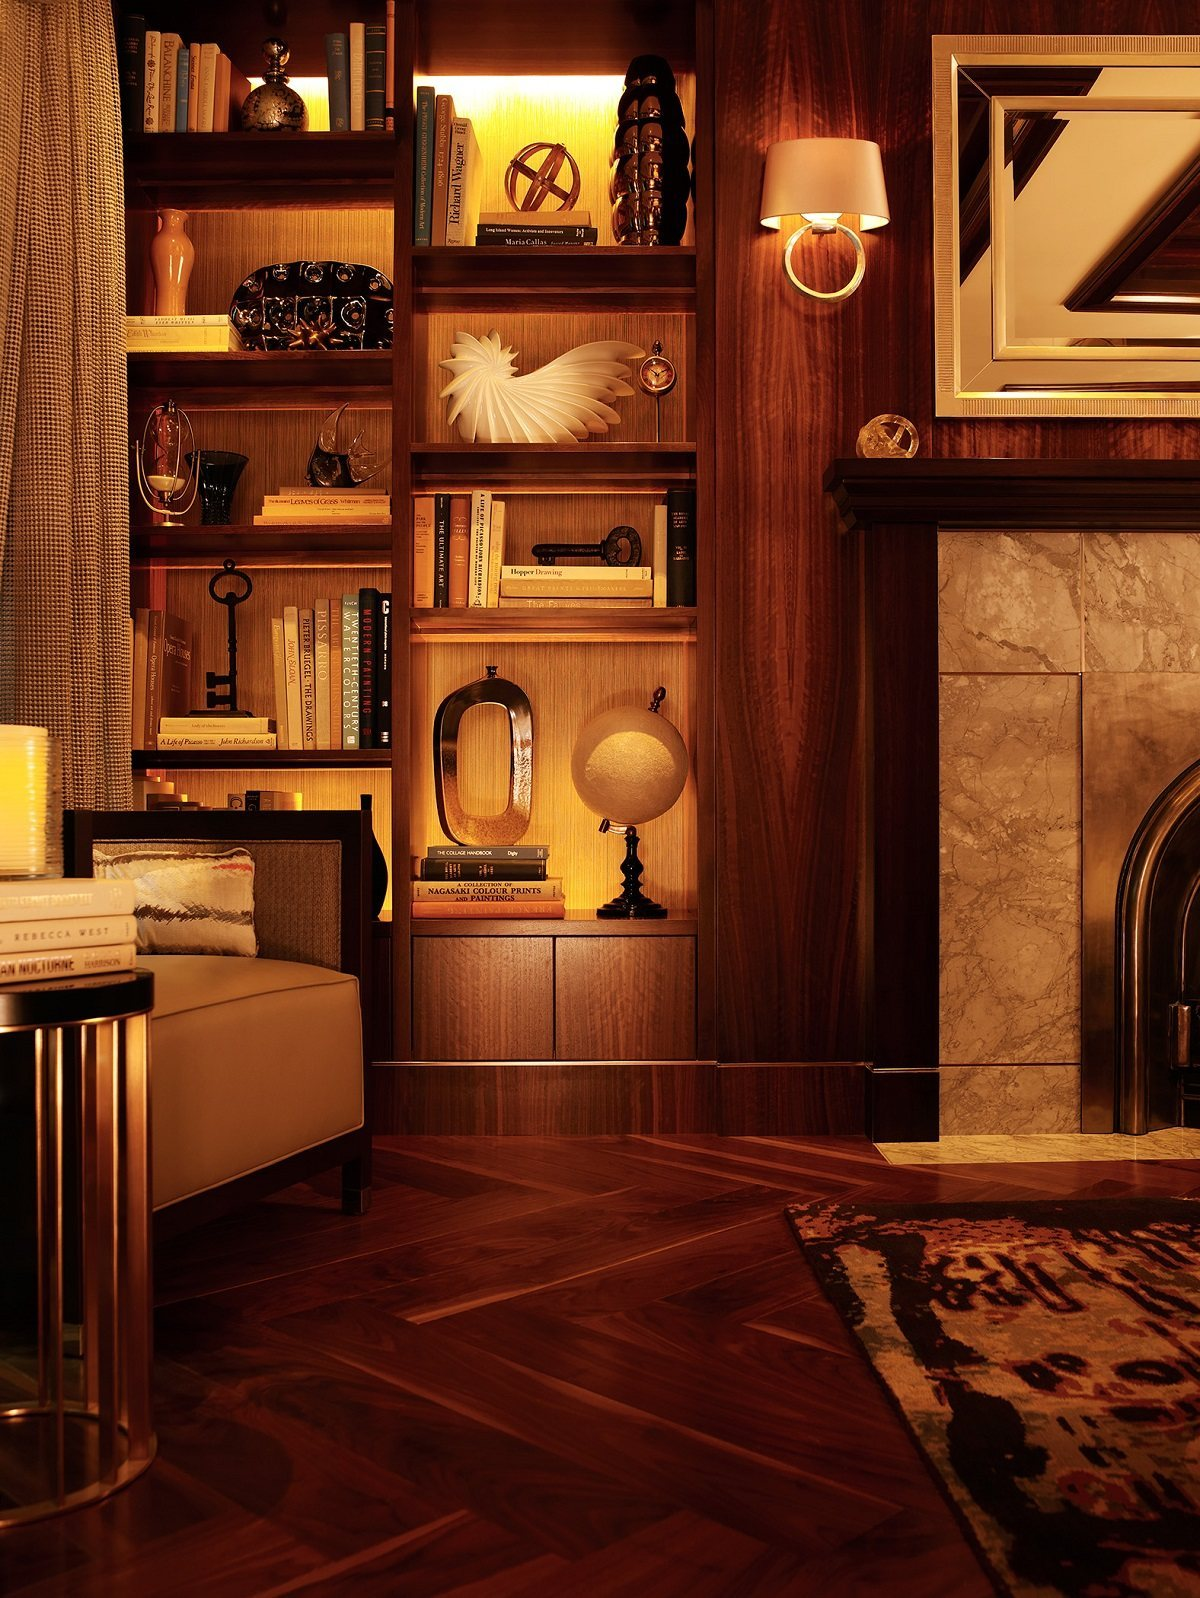 WestHouse Hotel - New York City, NY, USA If there...